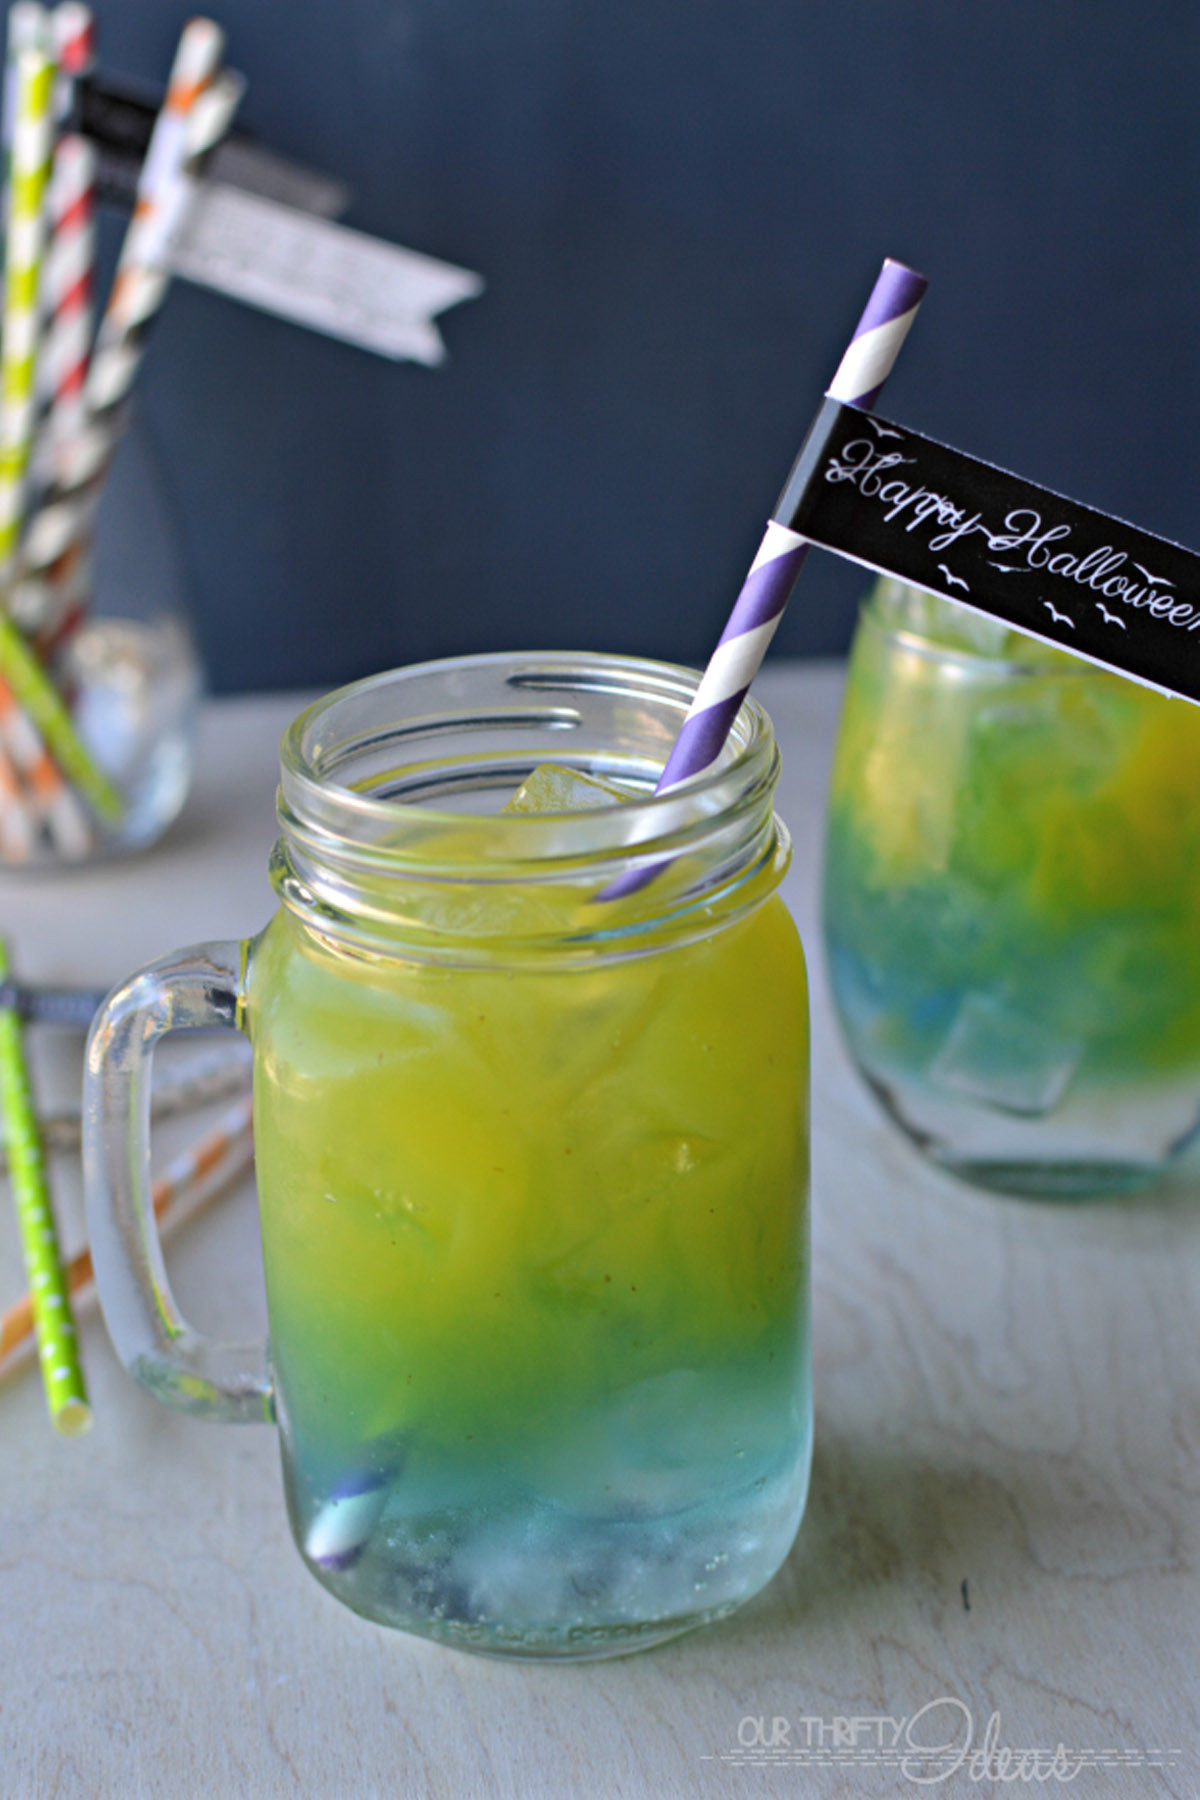 Easy Halloween Drinks  25 Easy Halloween Cocktails & Drinks Recipes for